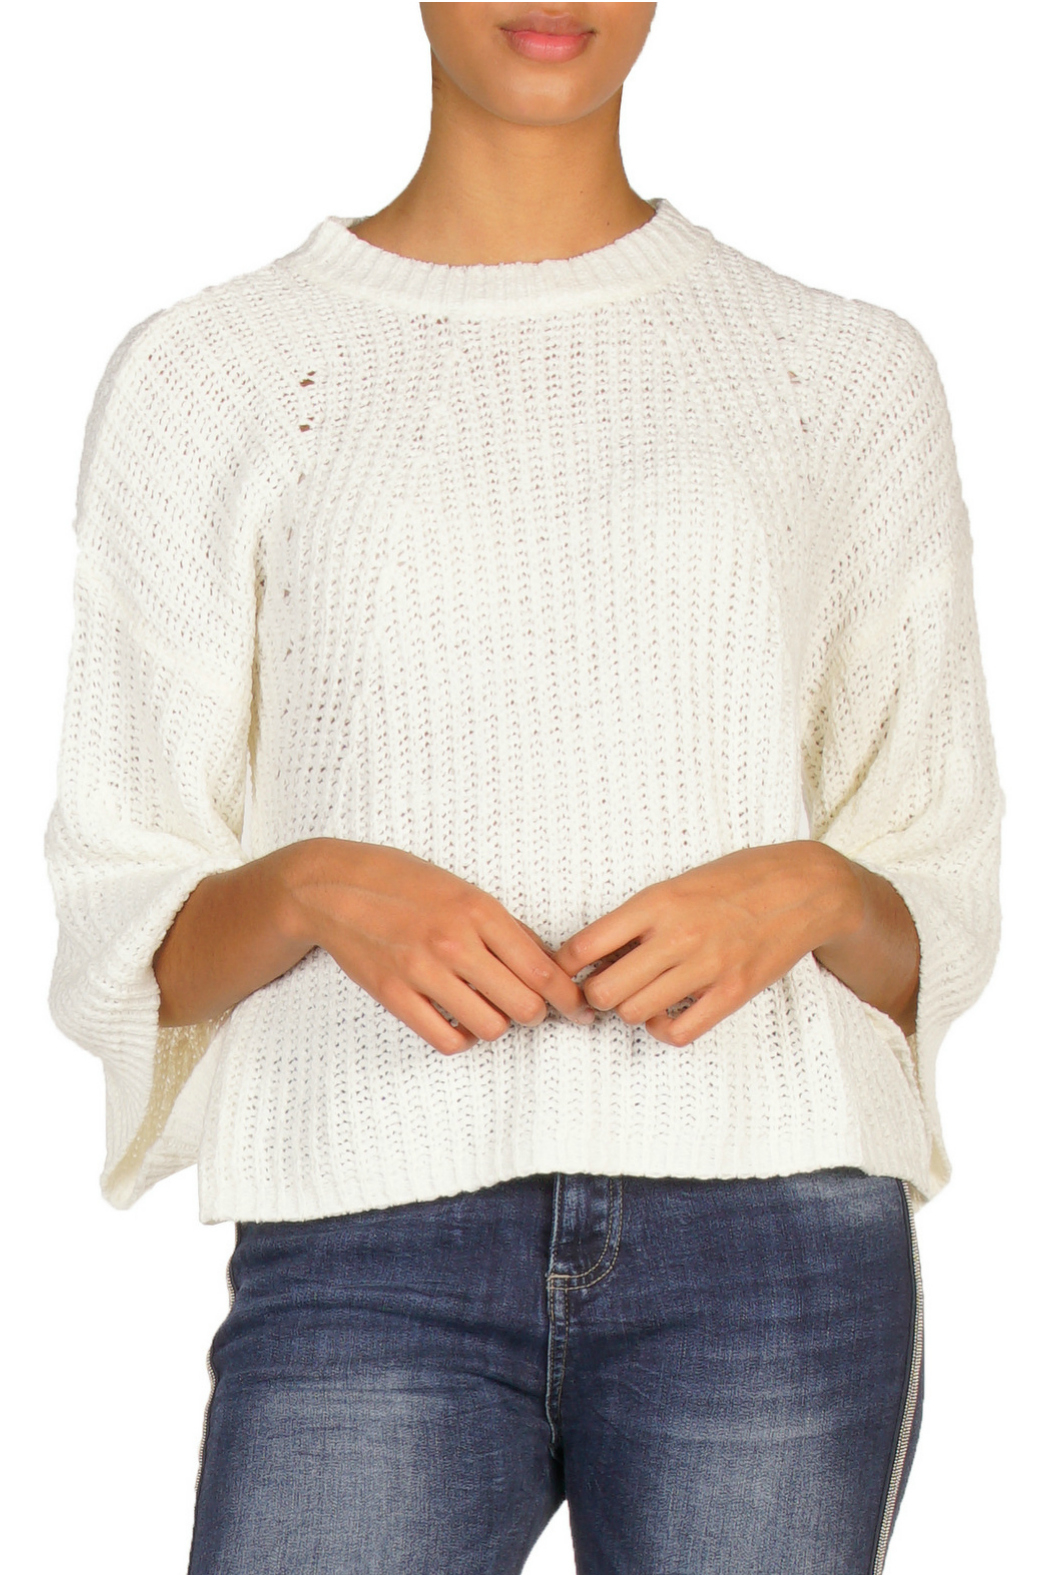 Elan Bell sleeve sweater - Main Image